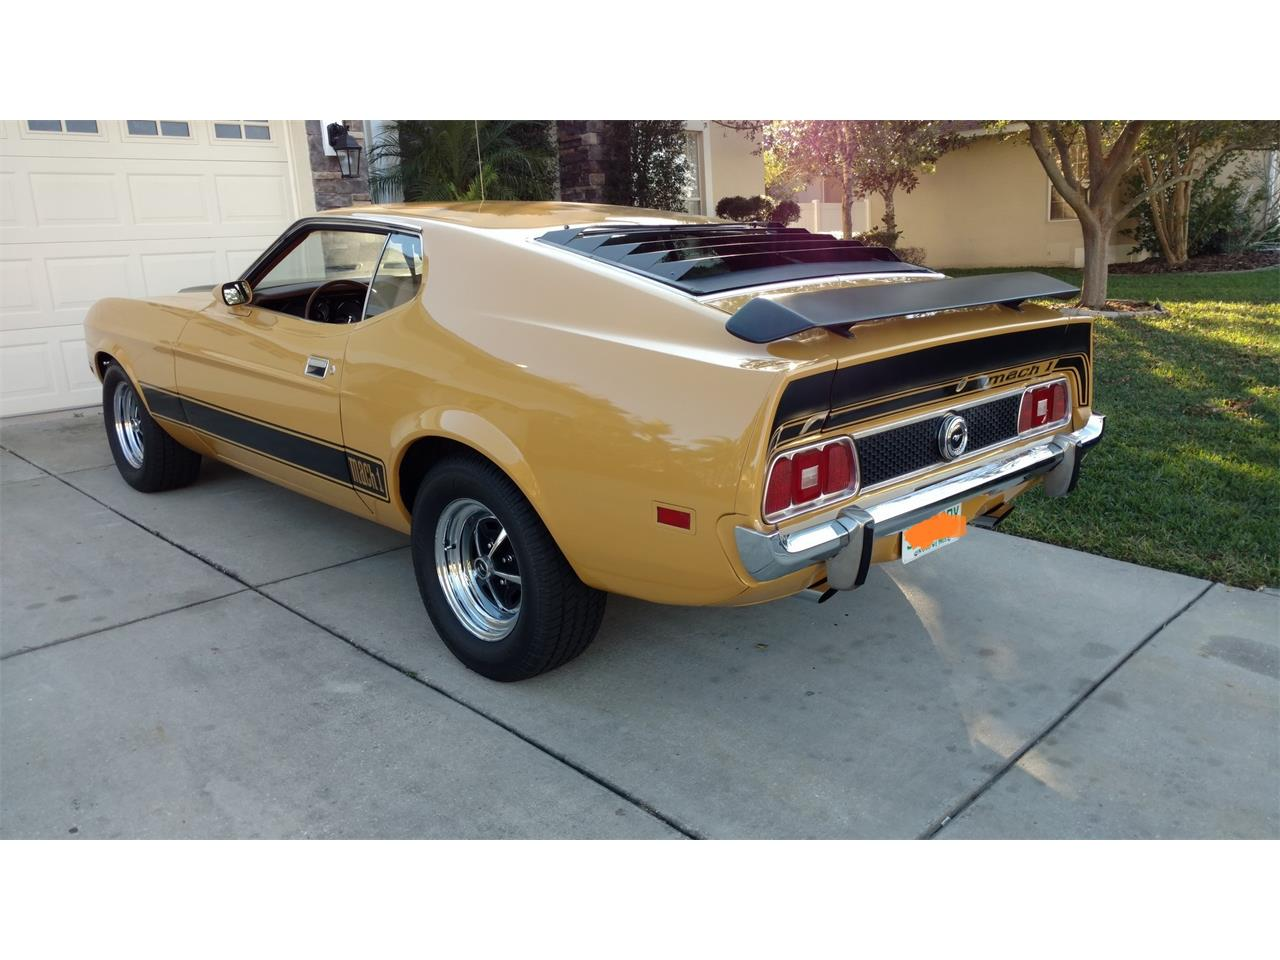 1973 Mustang Mach 1 Wiring Diagram Schematic Diagrams 73 Ford 351 Windsor Fuse Box For Light Switch U2022 1966 Starter Relay